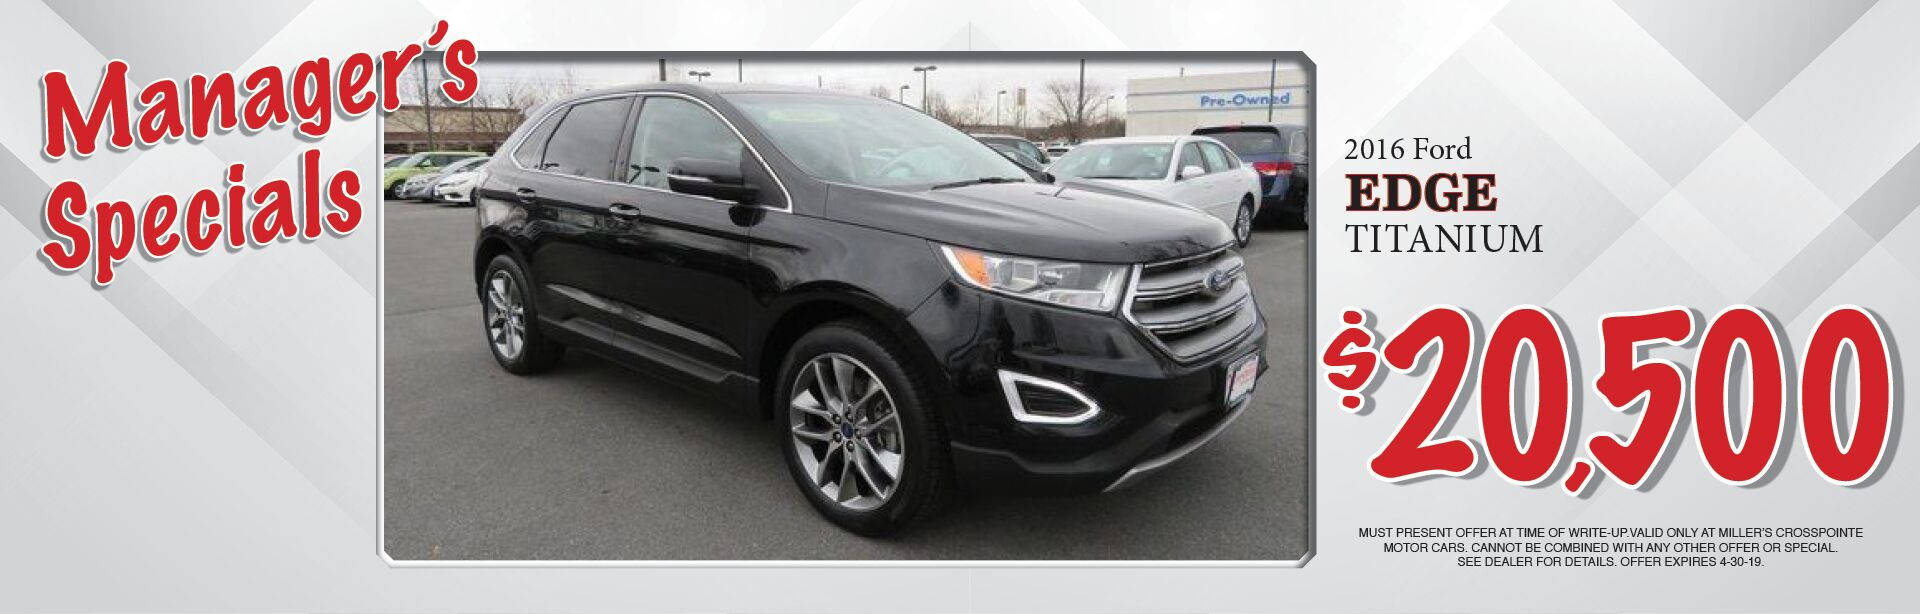 2016 Ford Edge Special